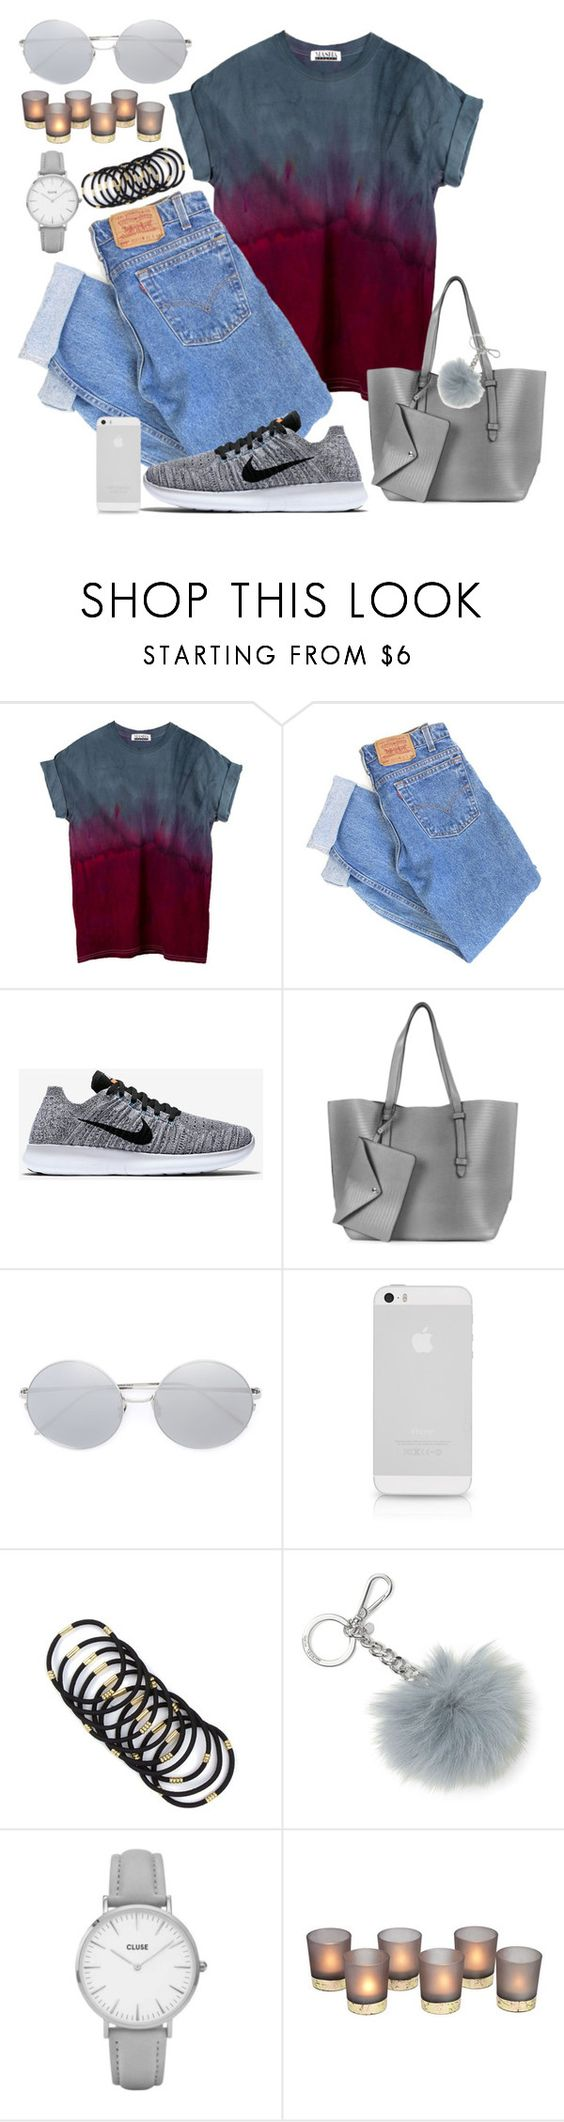 """""""ex's & oh's"""" by catsrgr8 ❤ liked on Polyvore featuring Levi's, NIKE, Topshop, Linda Farrow and MICHAEL Michael Kors"""